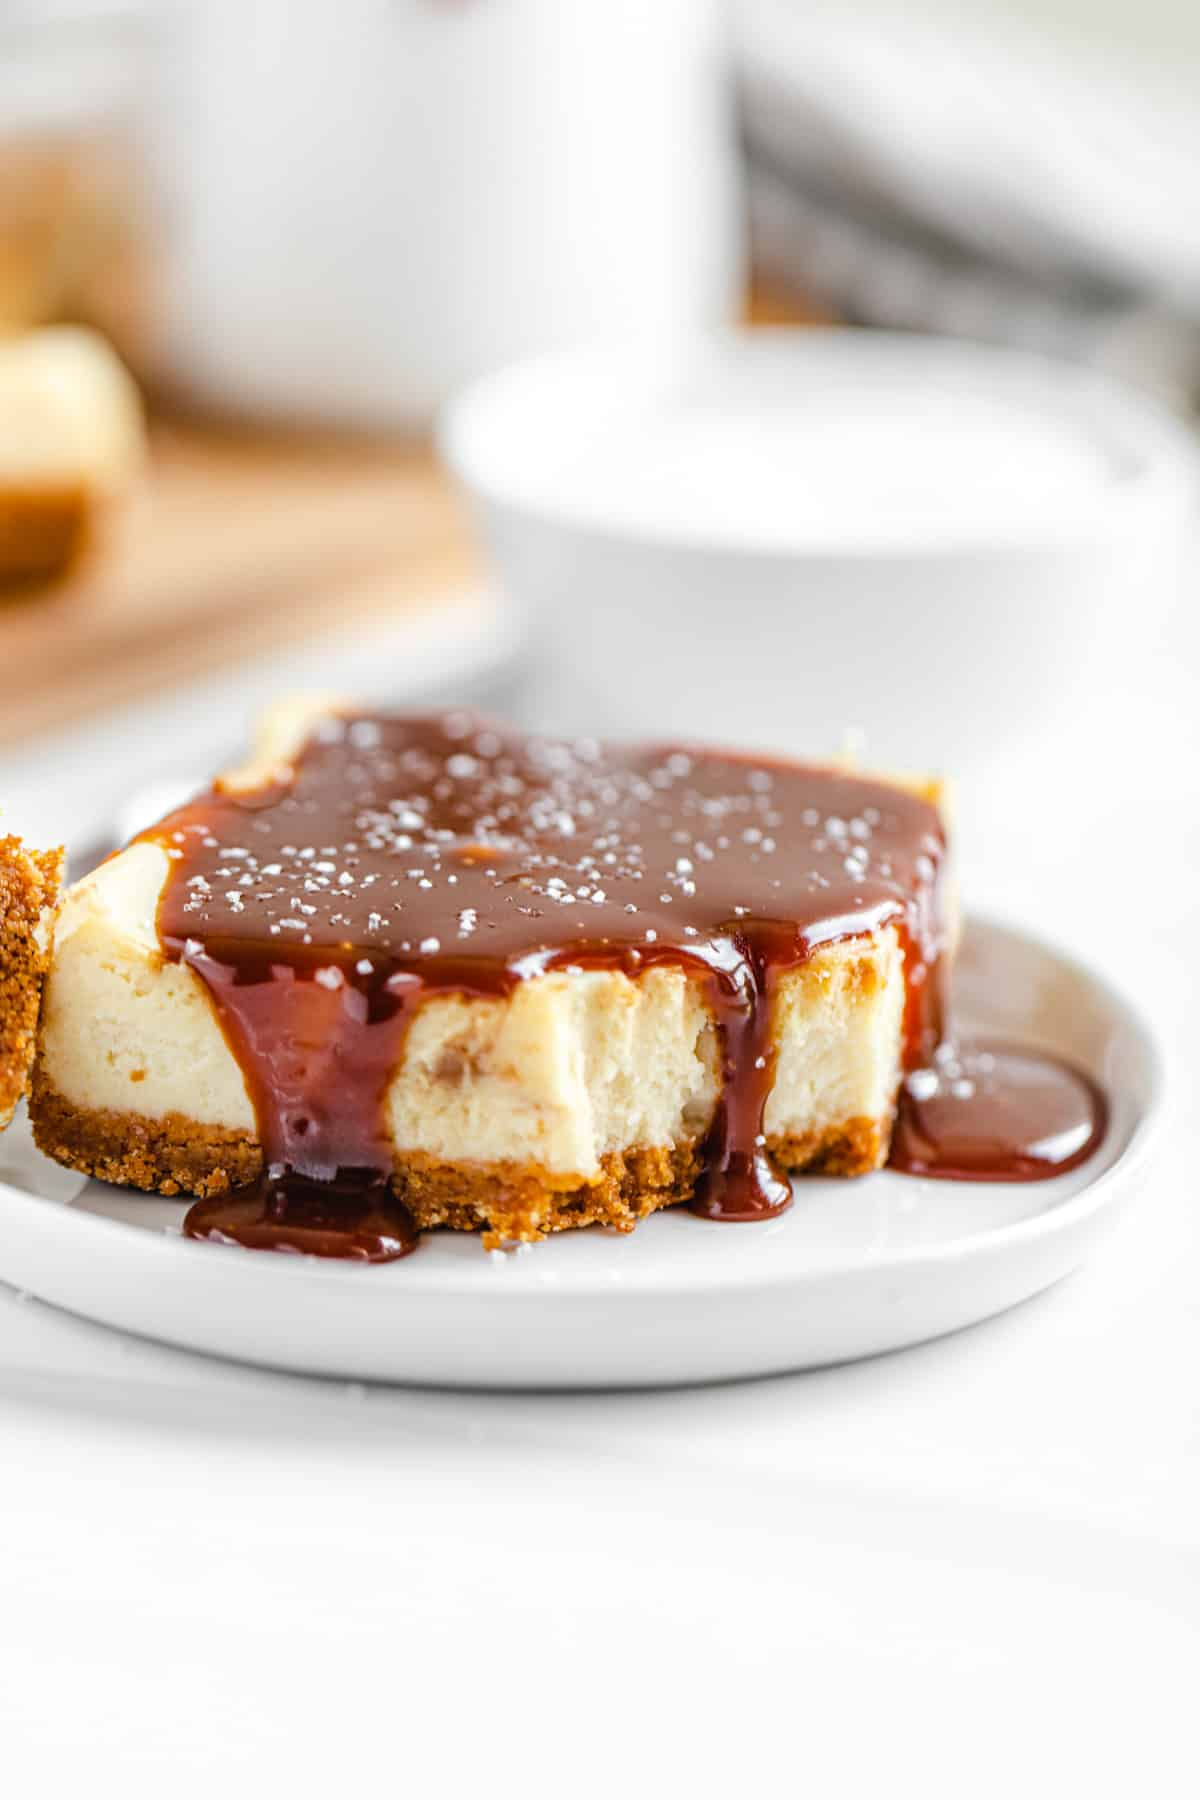 half-eaten caramel topped cheesecake bar on a small white plate